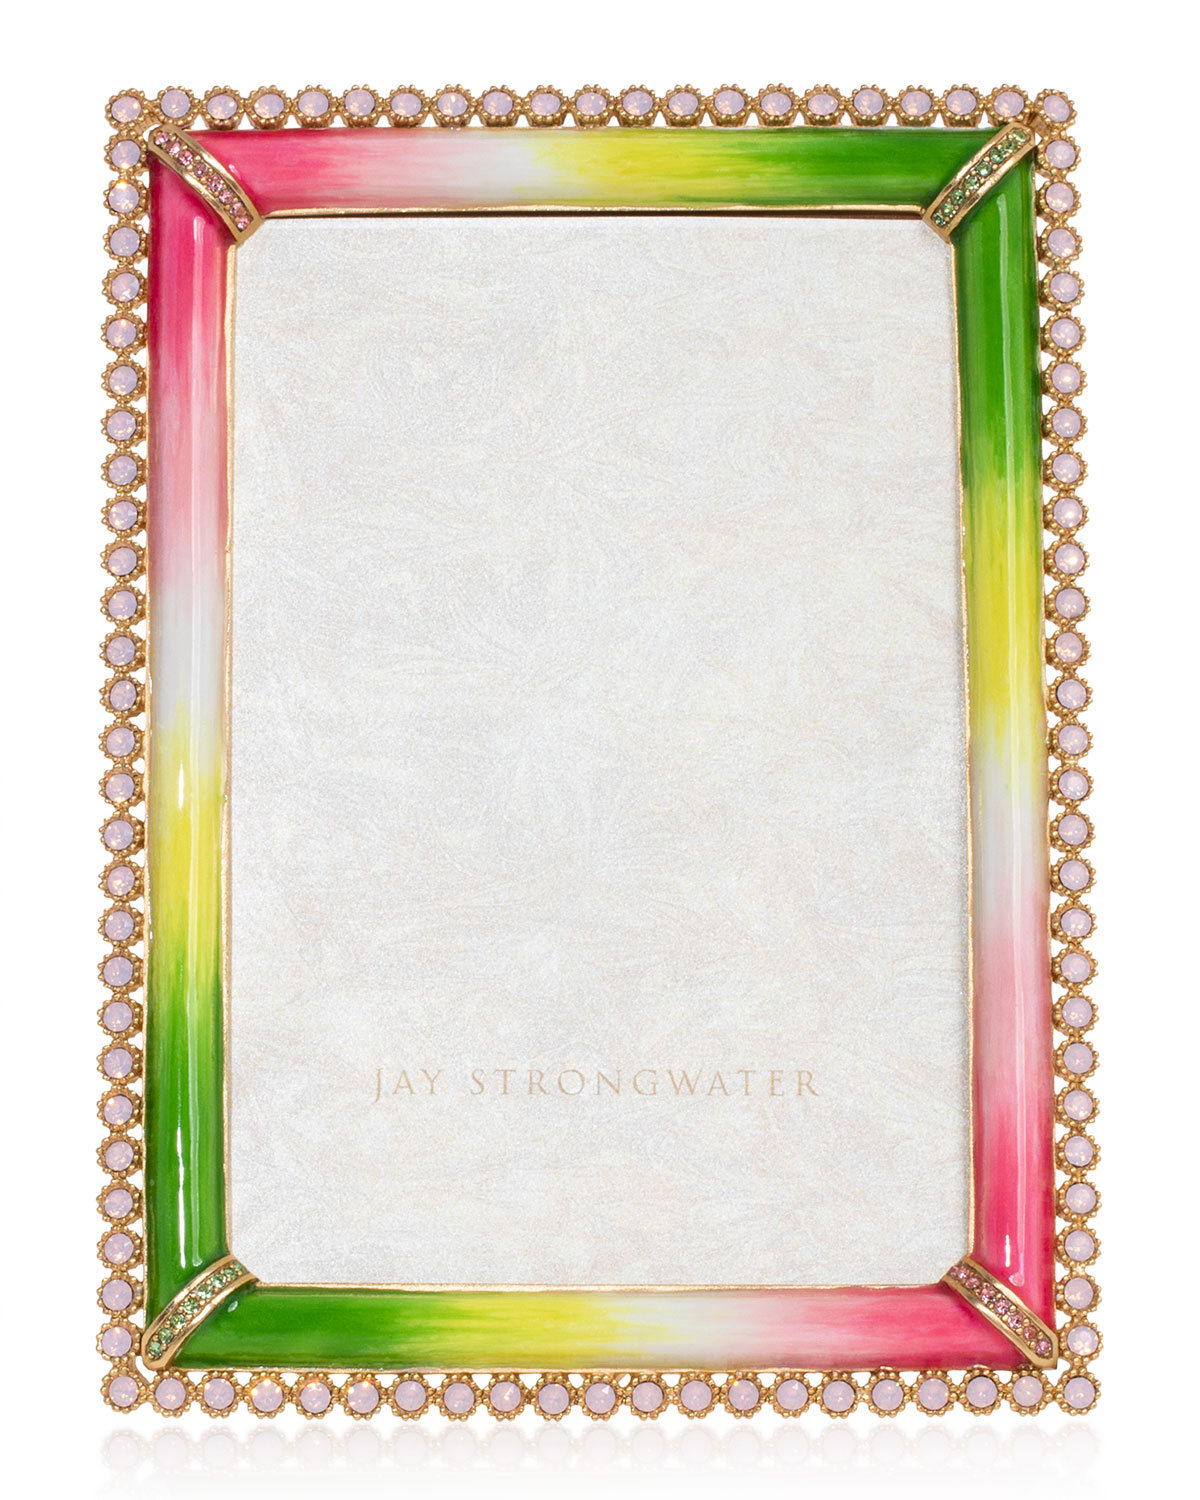 """Jay Strongwater STONE EDGE PICTURE FRAME, 4"""" X 6"""""""